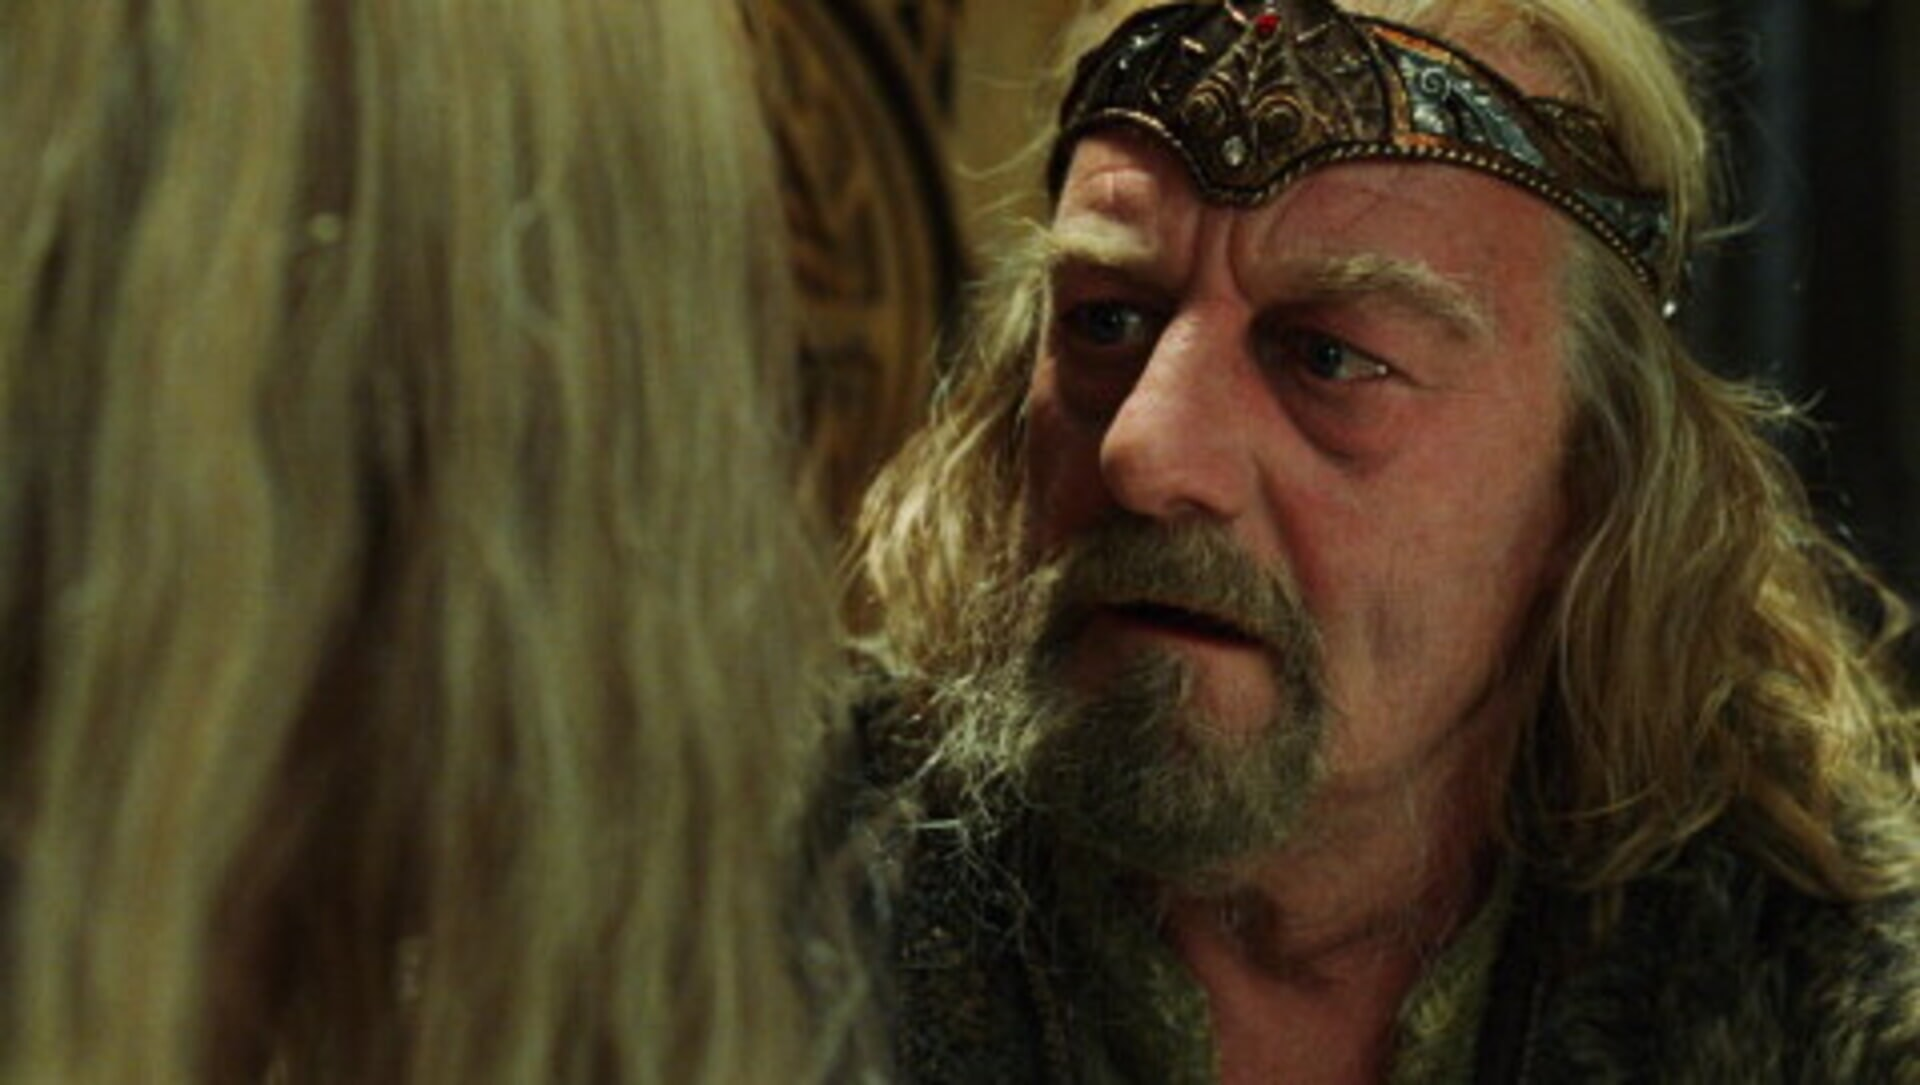 The Lord of the Rings: The Two Towers - Image 27